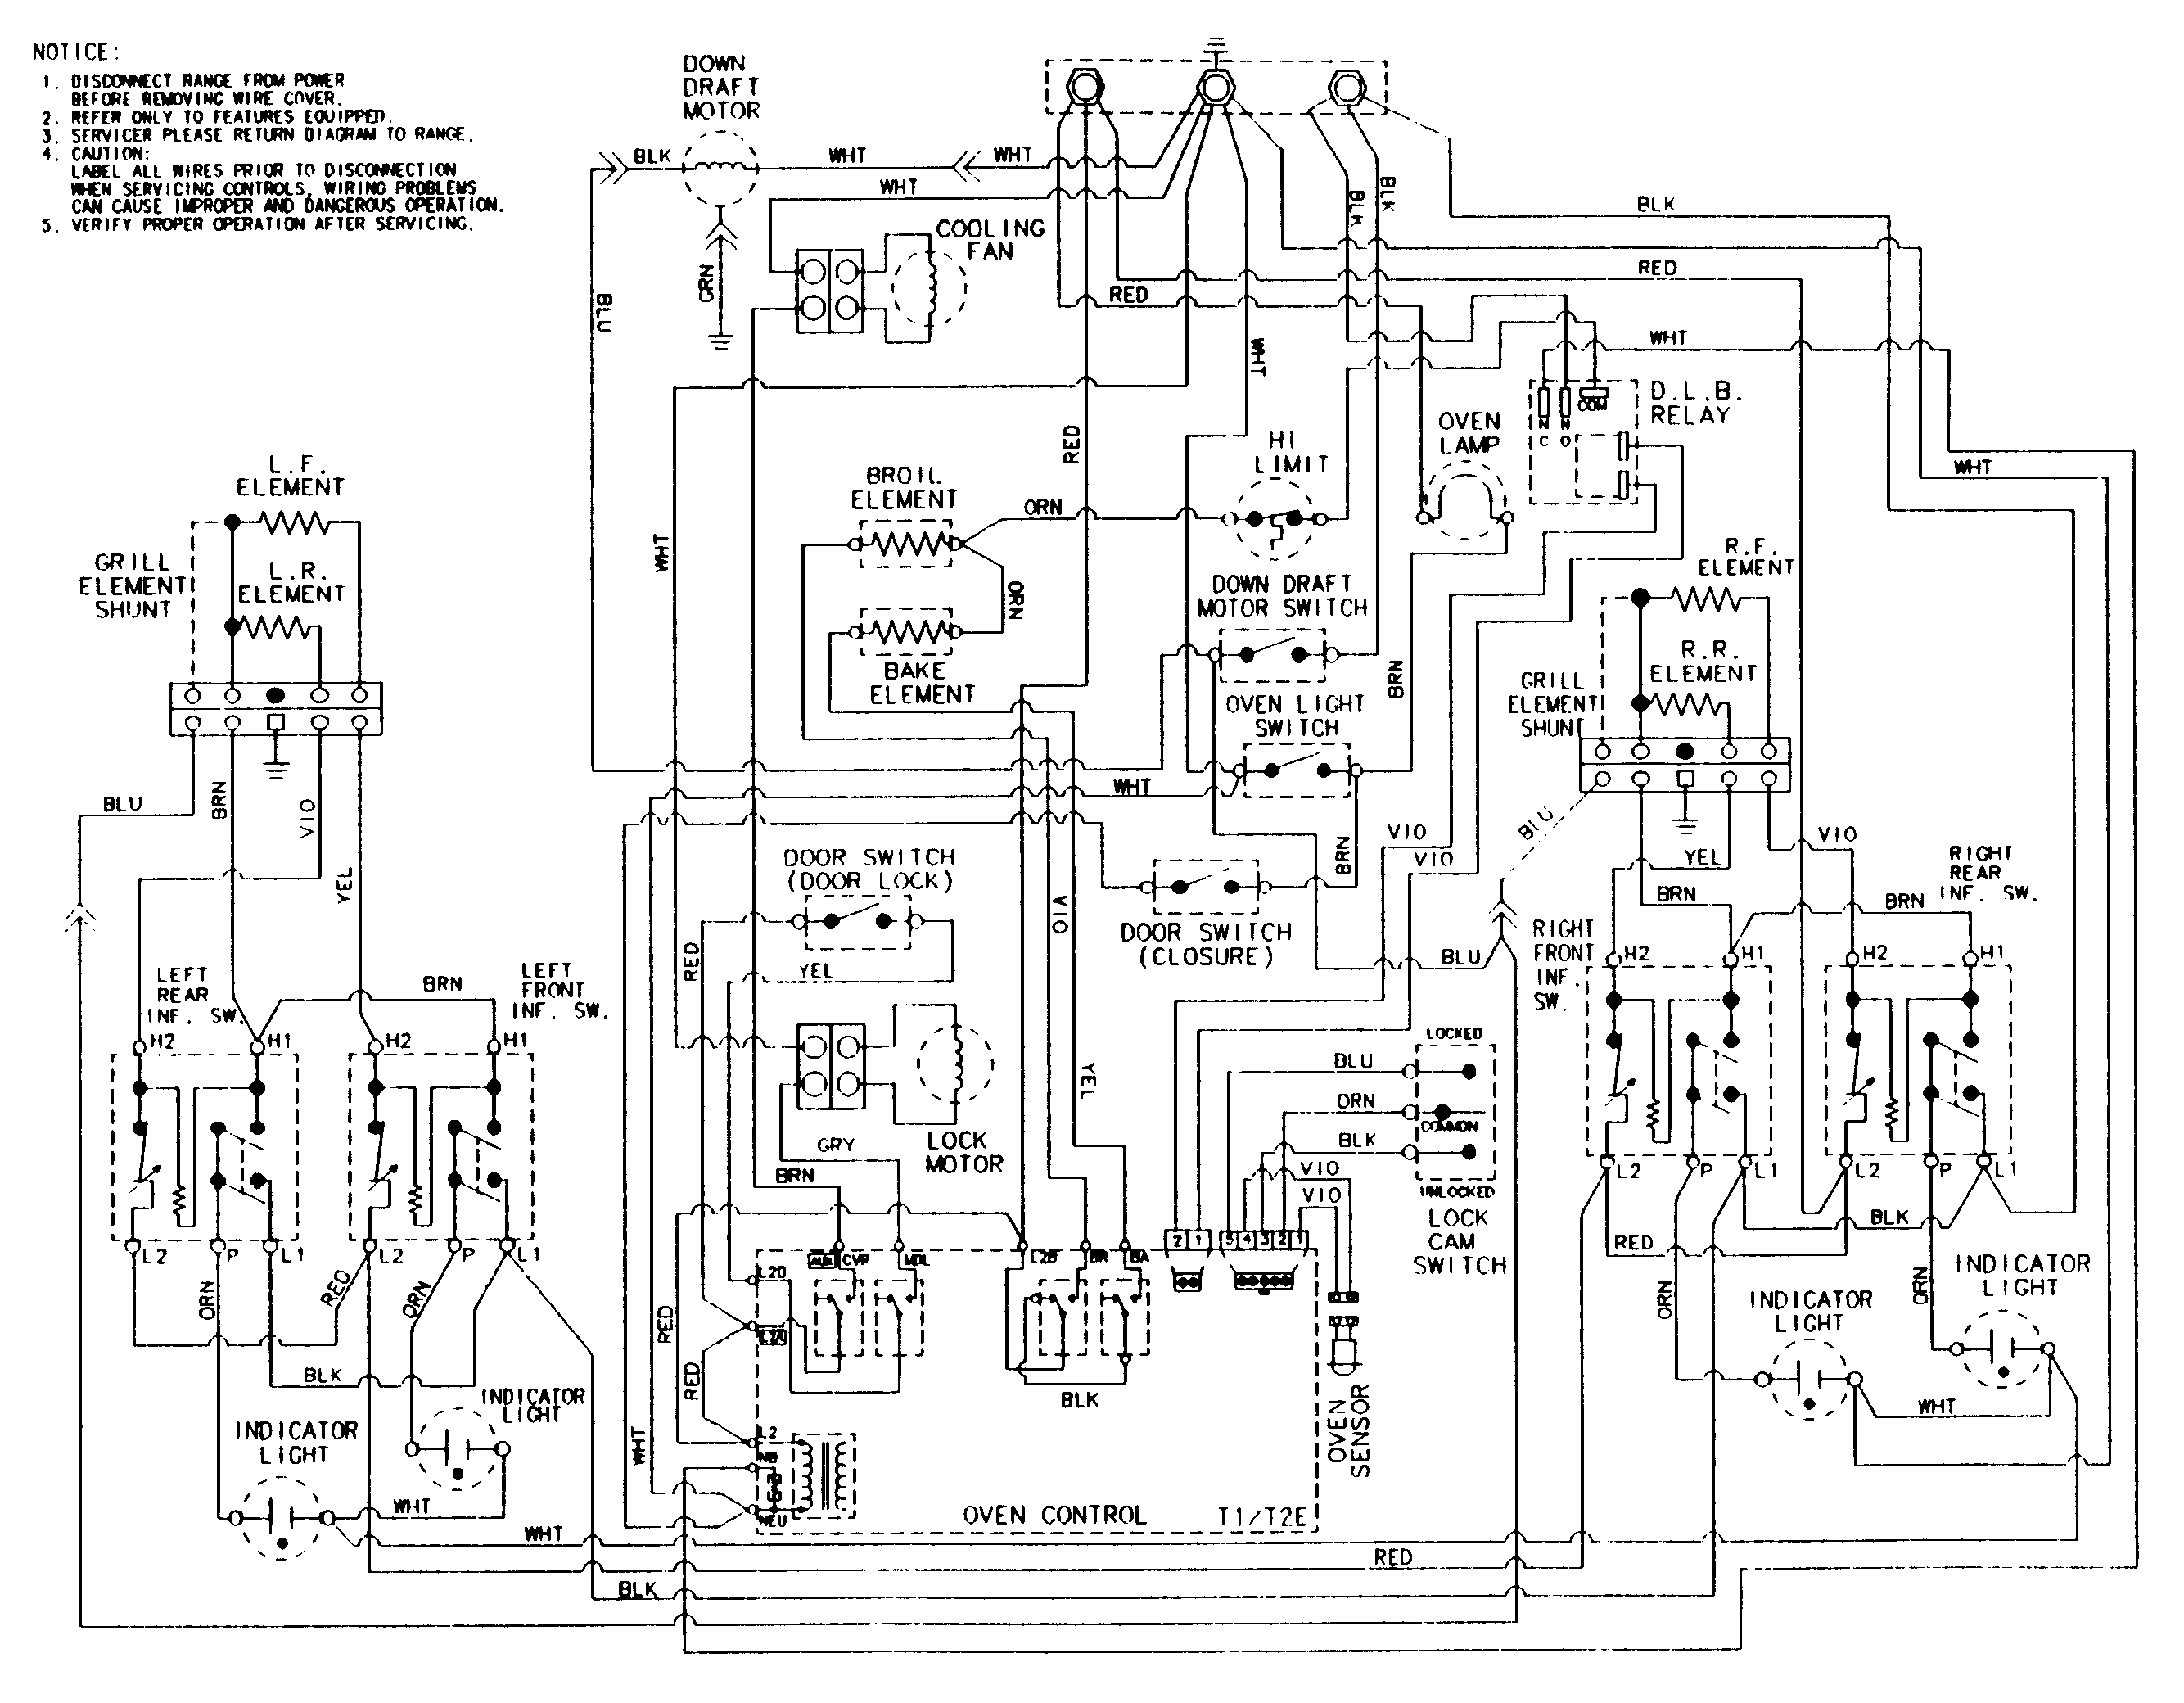 17238 S C3 A4hk C3 B6kaavioita Laidasta Laitaan Varoitus Paljon Kuvia together with Alternator Schematic Symbol likewise Index also 205299 Wiring For 5 Pole Switch further Series. on simple harley wiring diagram